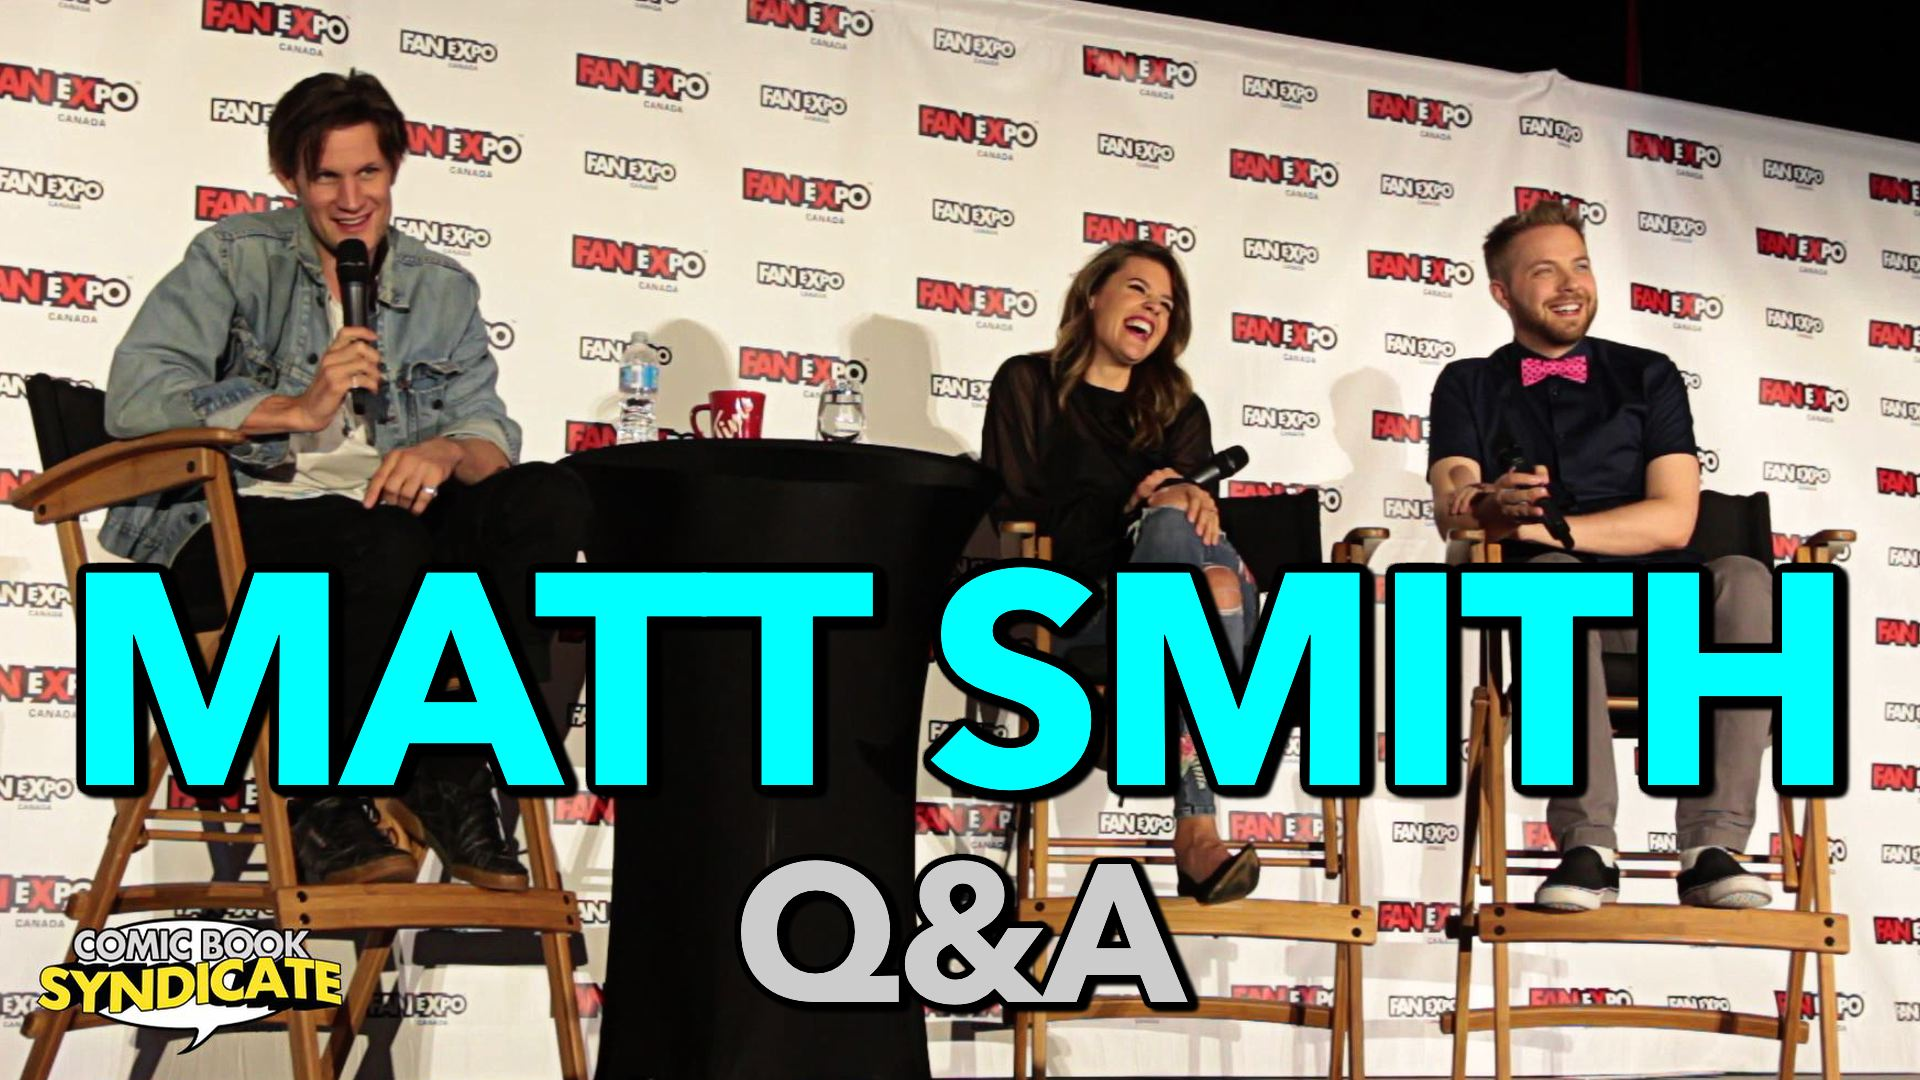 Matt Smith (Doctor Who) Q&A at Fan Expo Canada